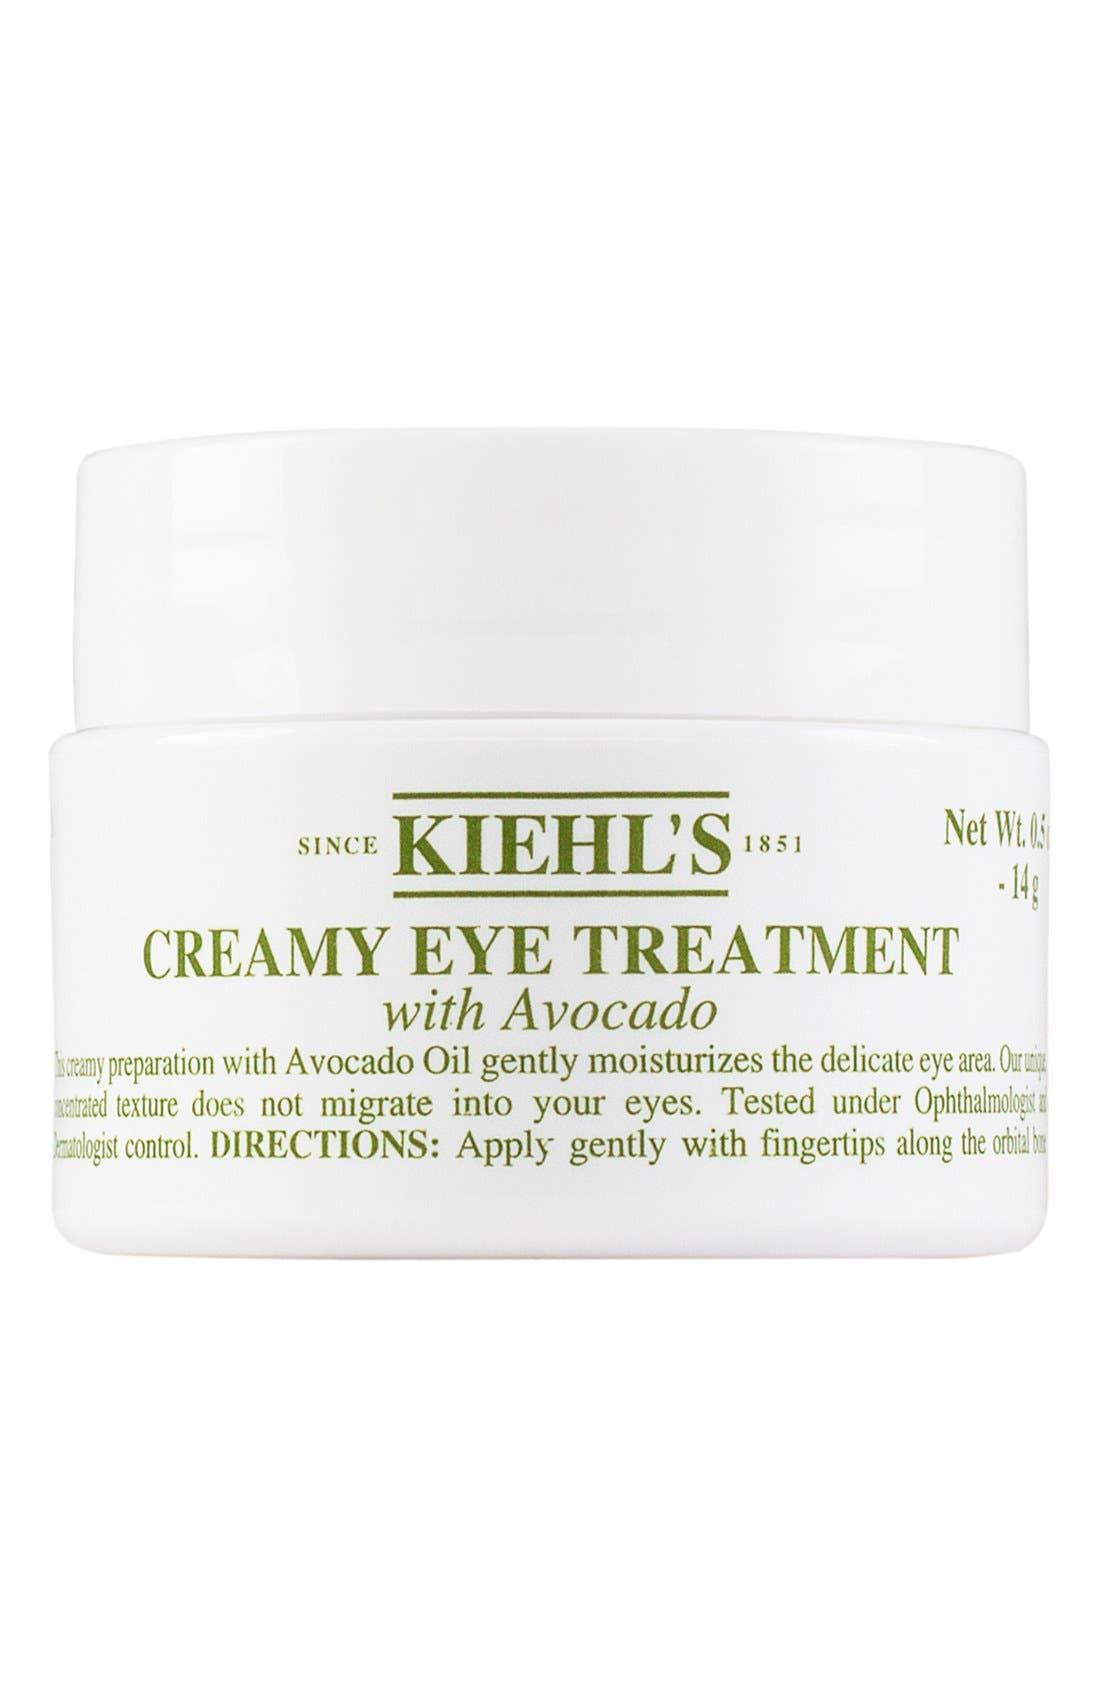 Kiehl's Since 1851 Creamy Eye Treatment with Avocado (0.5 oz.)